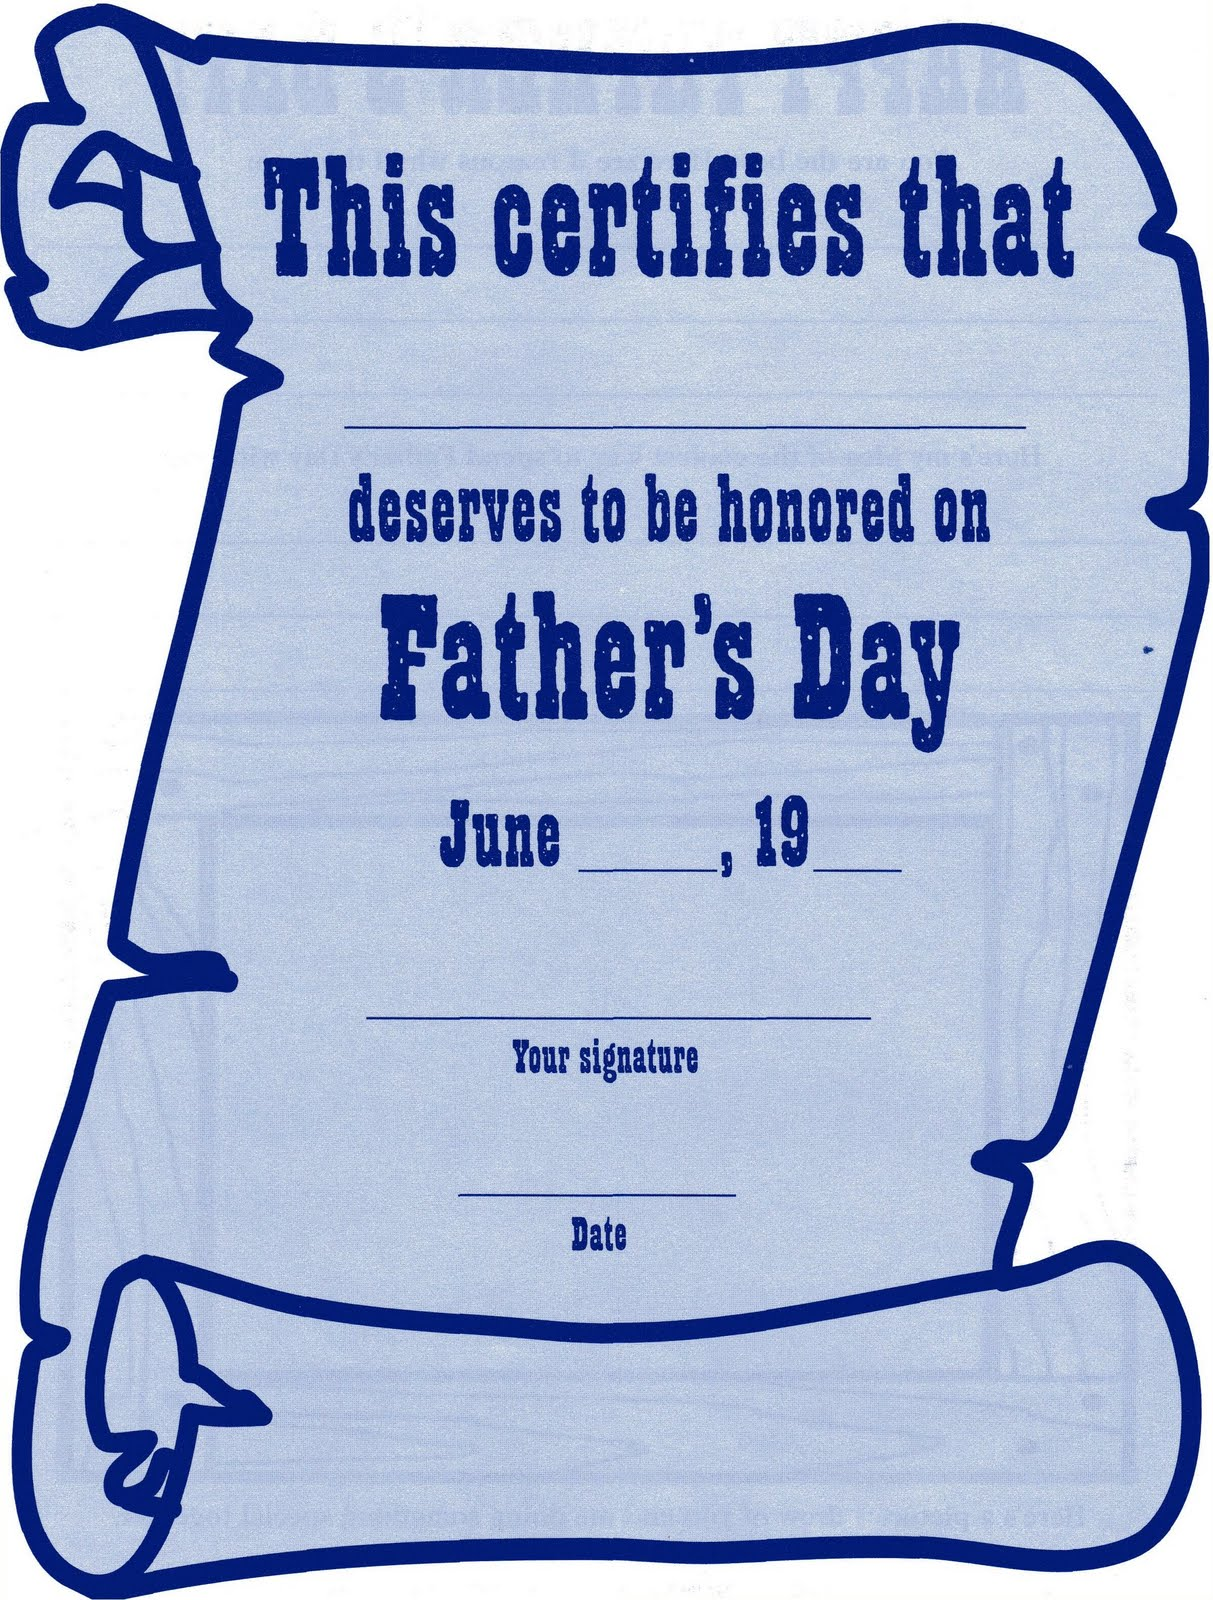 ELEMENTARY SCHOOL ENRICHMENT ACTIVITIES: FATHER'S DAY ...